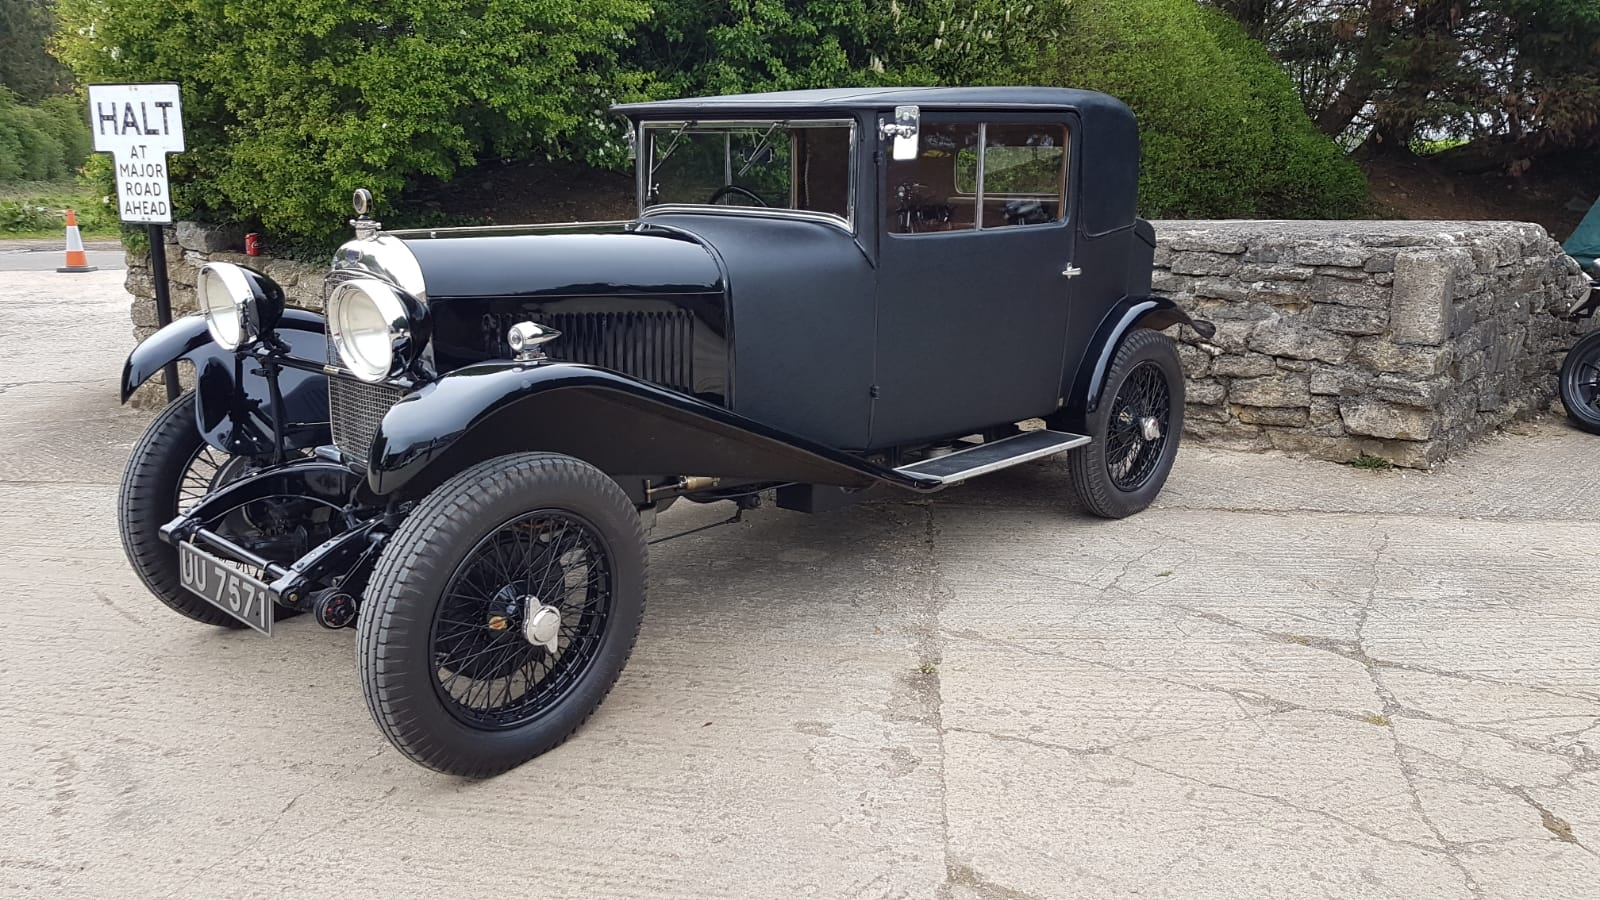 1929 Black Vintage Vehicle.jpg